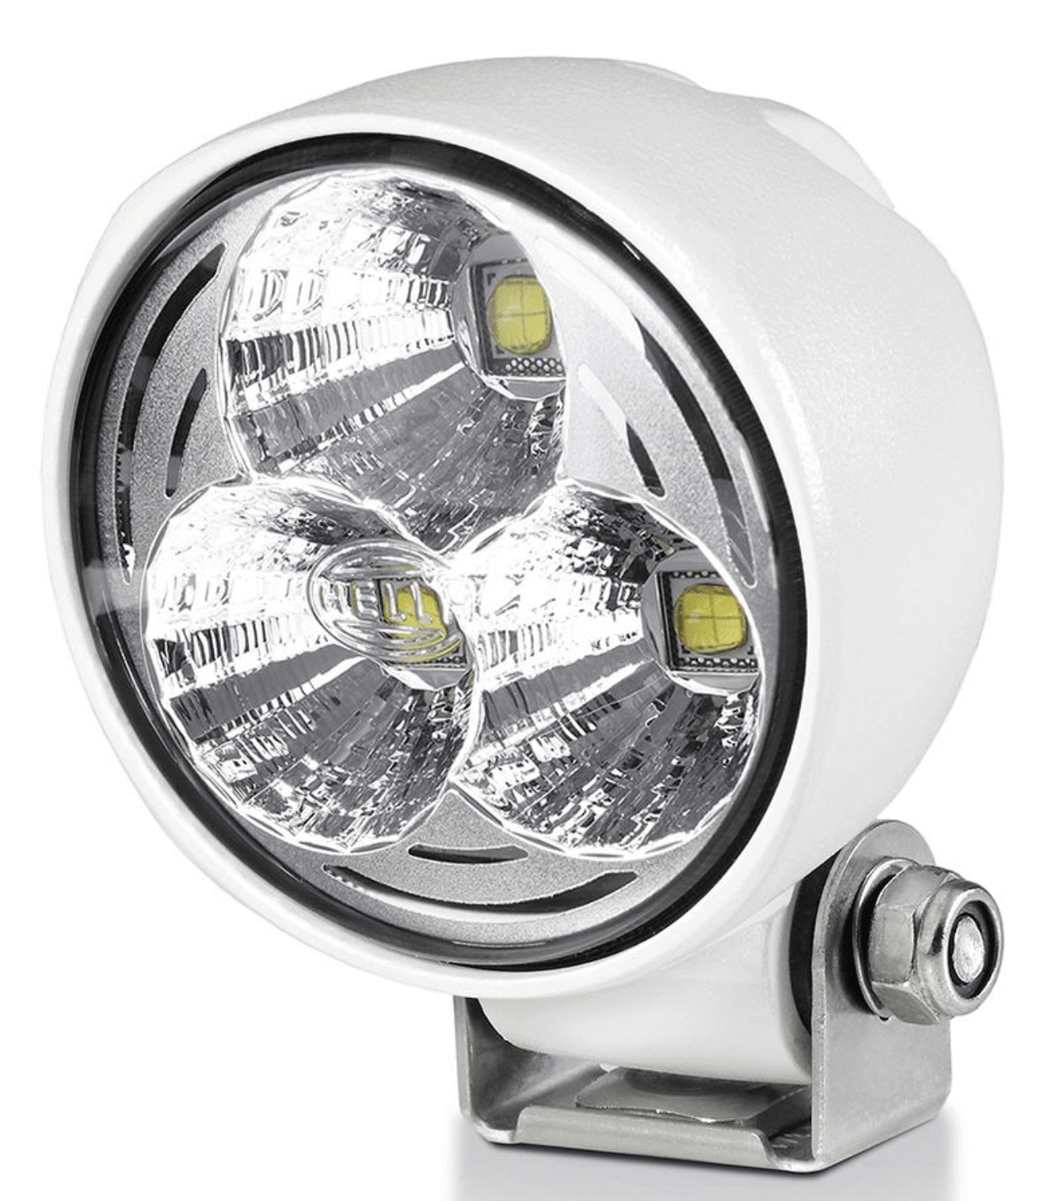 Hella - Module 70 LED Floodlight - Long range - White Housing